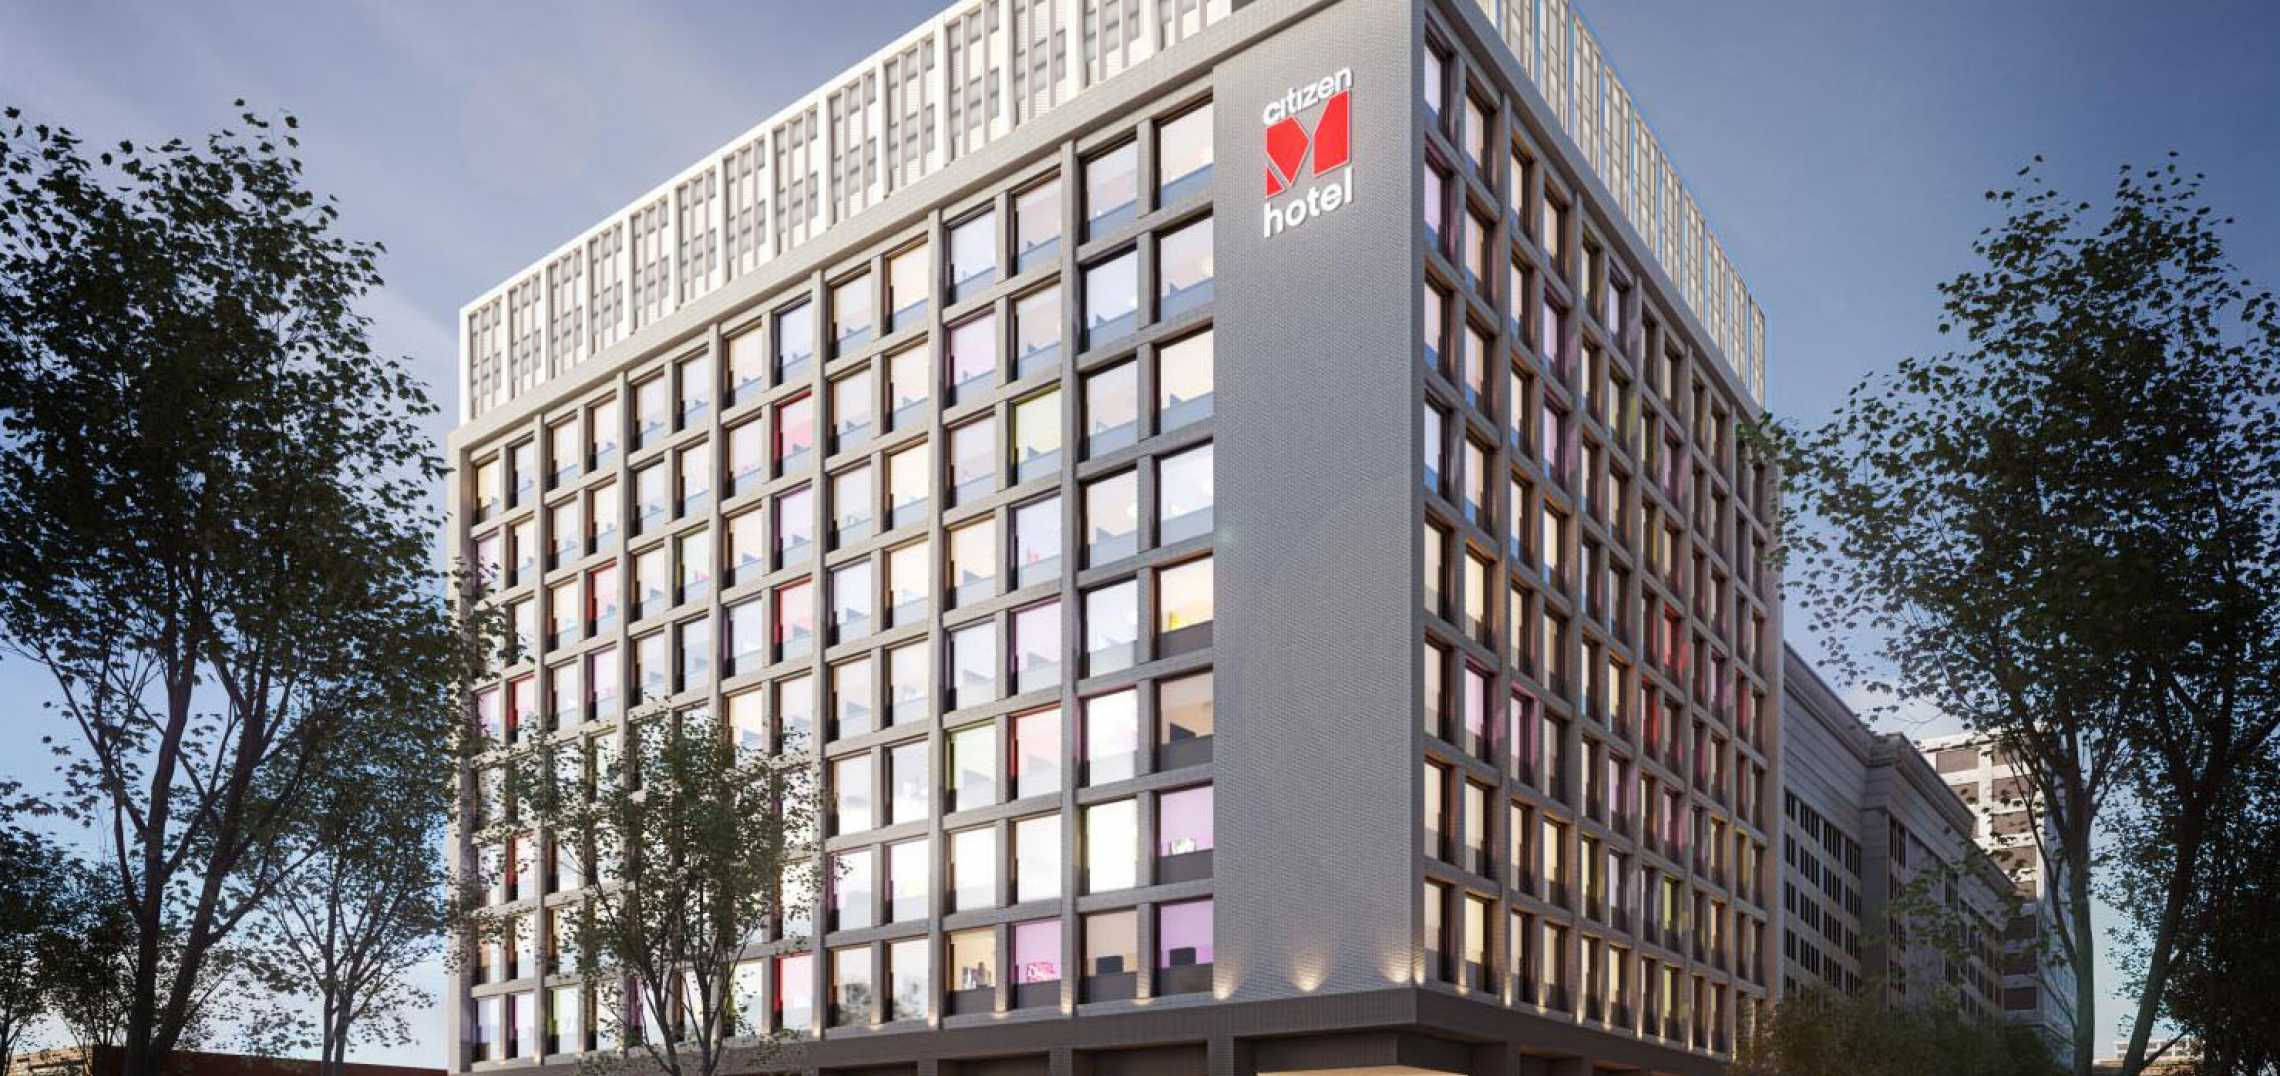 11-Story citizenM Hotel Breaks Ground in Downtown Los Angeles - URBANIZE Los Angeles